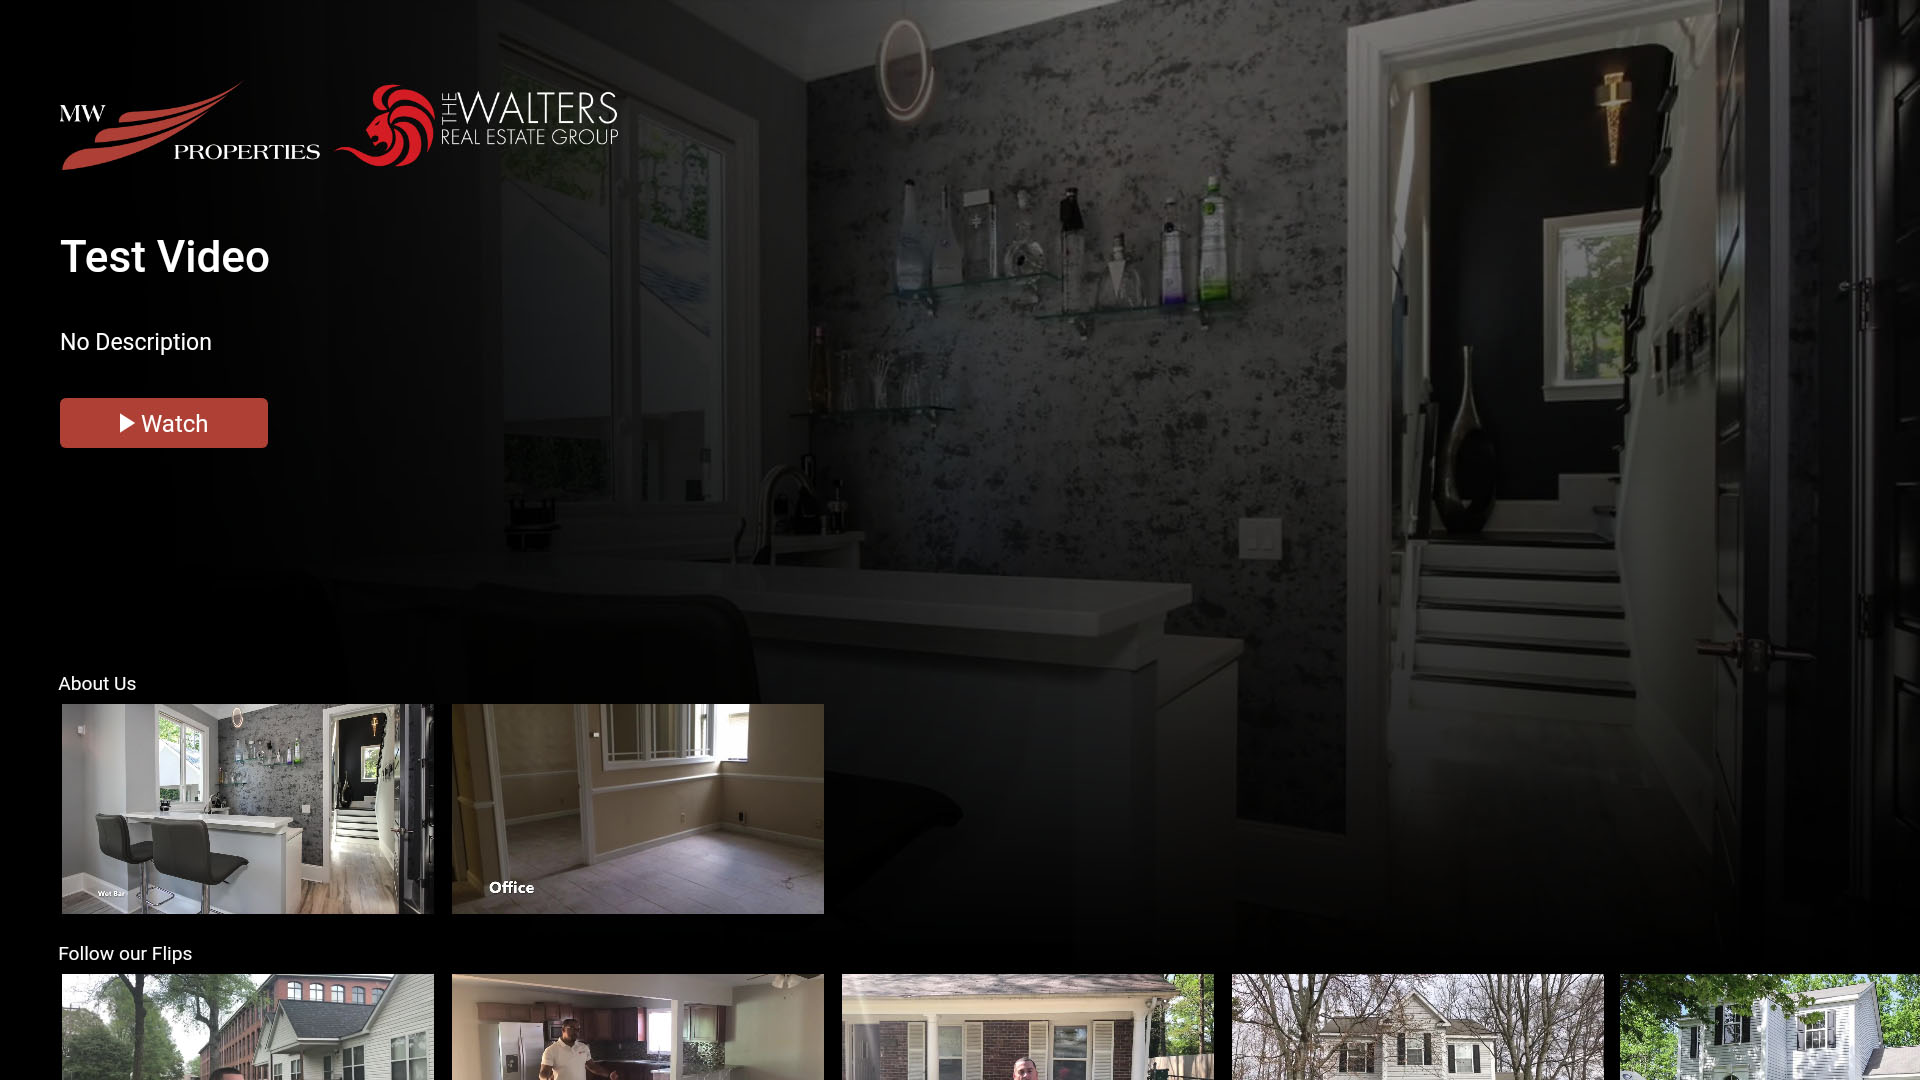 The Walters Real Estate Group Screenshot 001